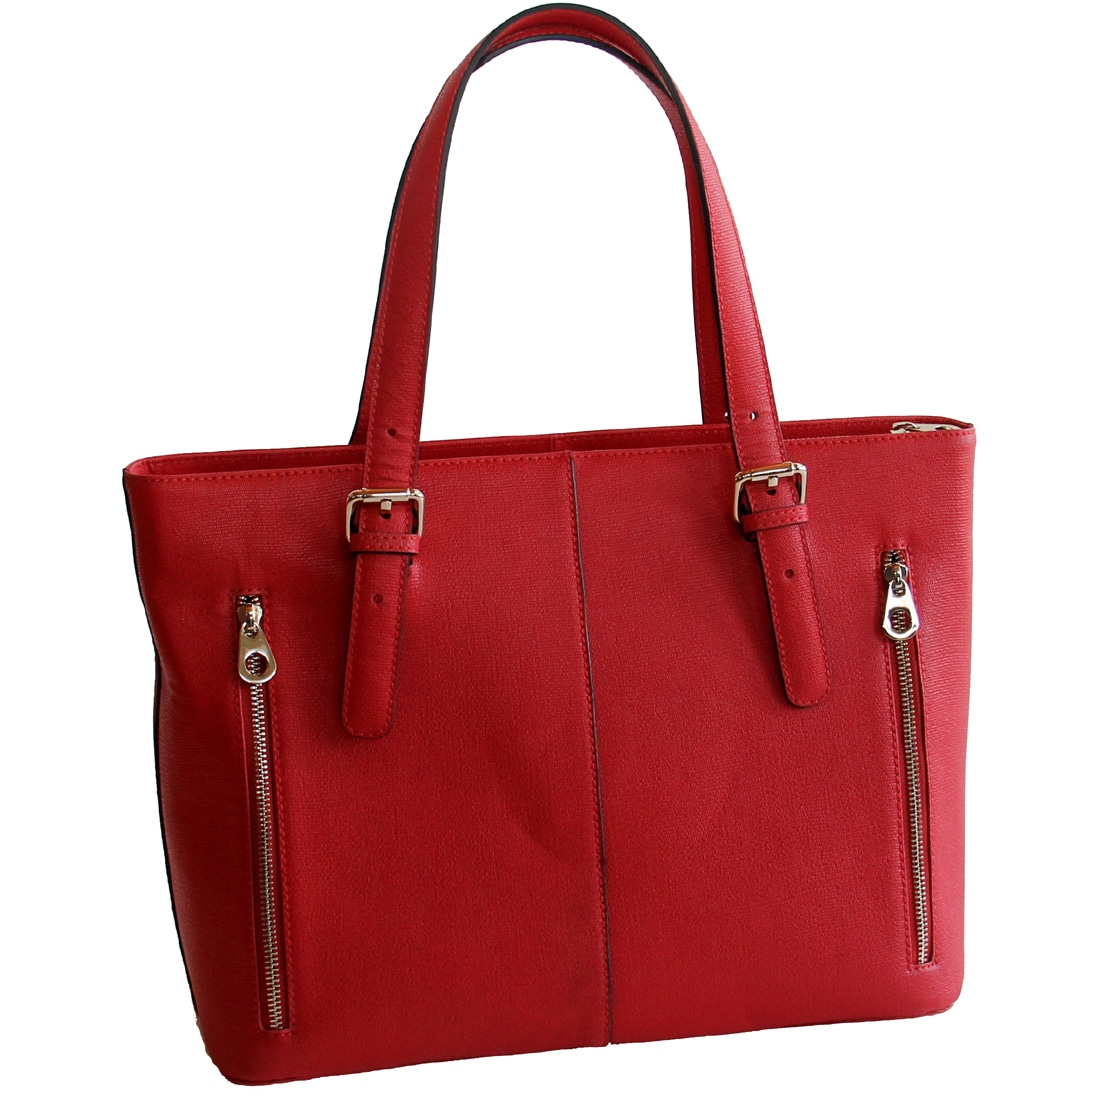 542b512bd69a Concealed Carrie Concealed Firearm Smooth Leather Tote Bag